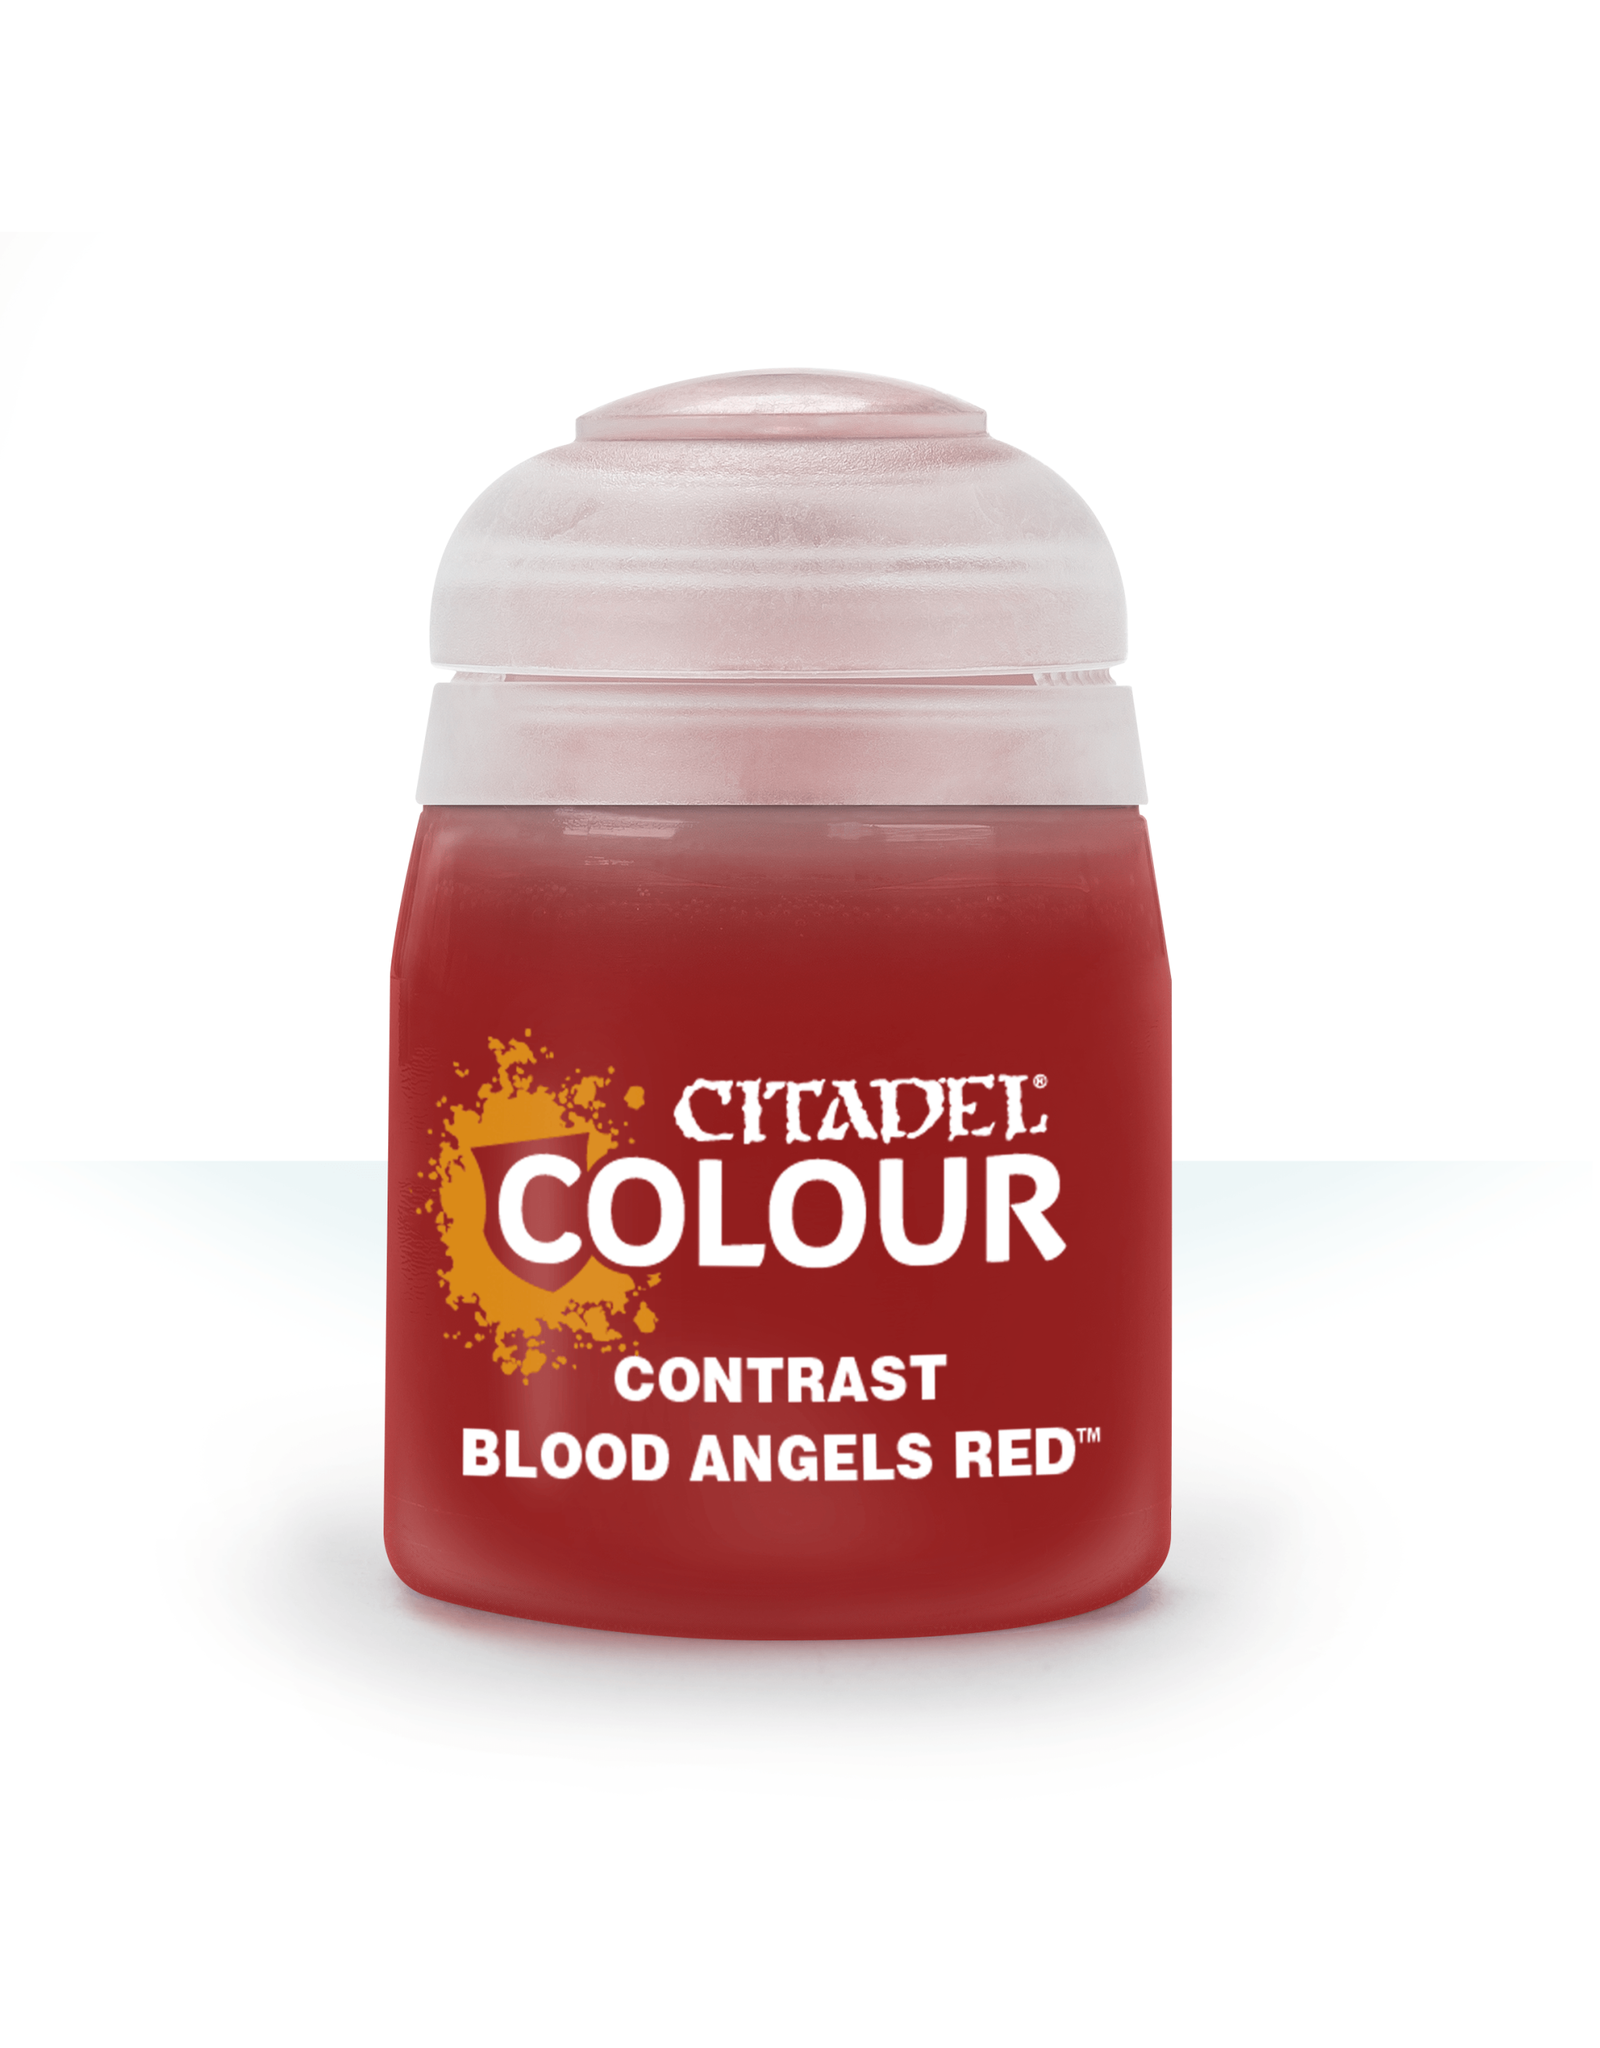 Citadel Blood Angels Red